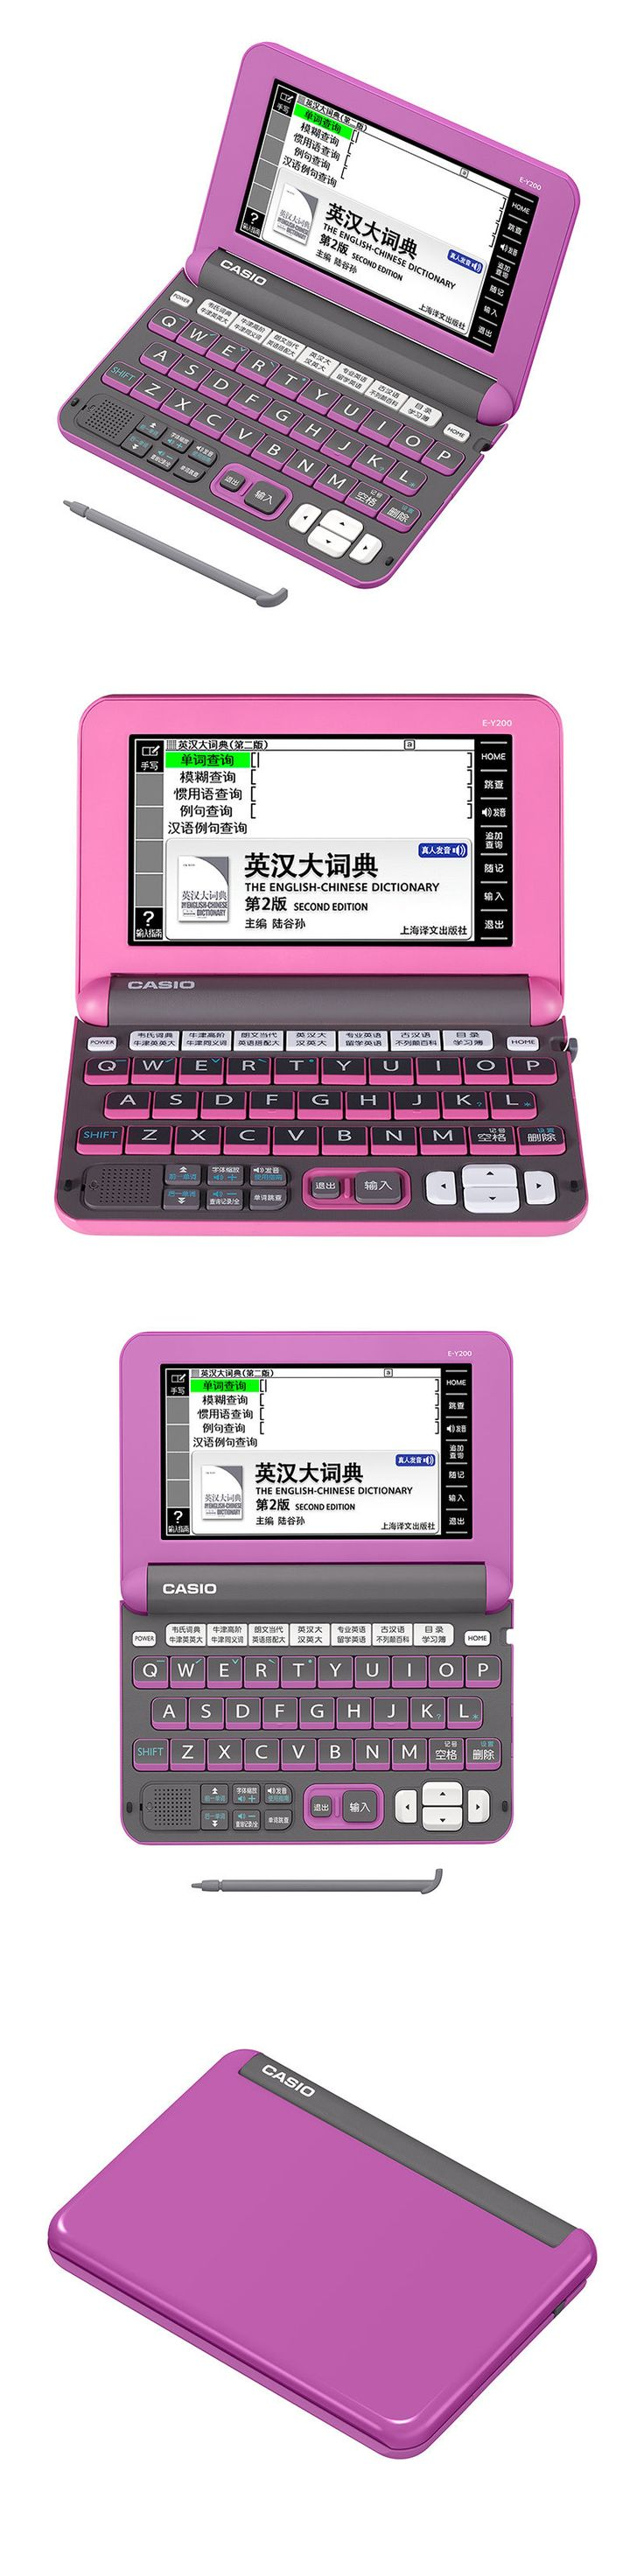 Dictionaries and Translators: New Casio E-Y200 English Chinese Electronic Dictionary Translator Pink BUY IT NOW ONLY: $429.95